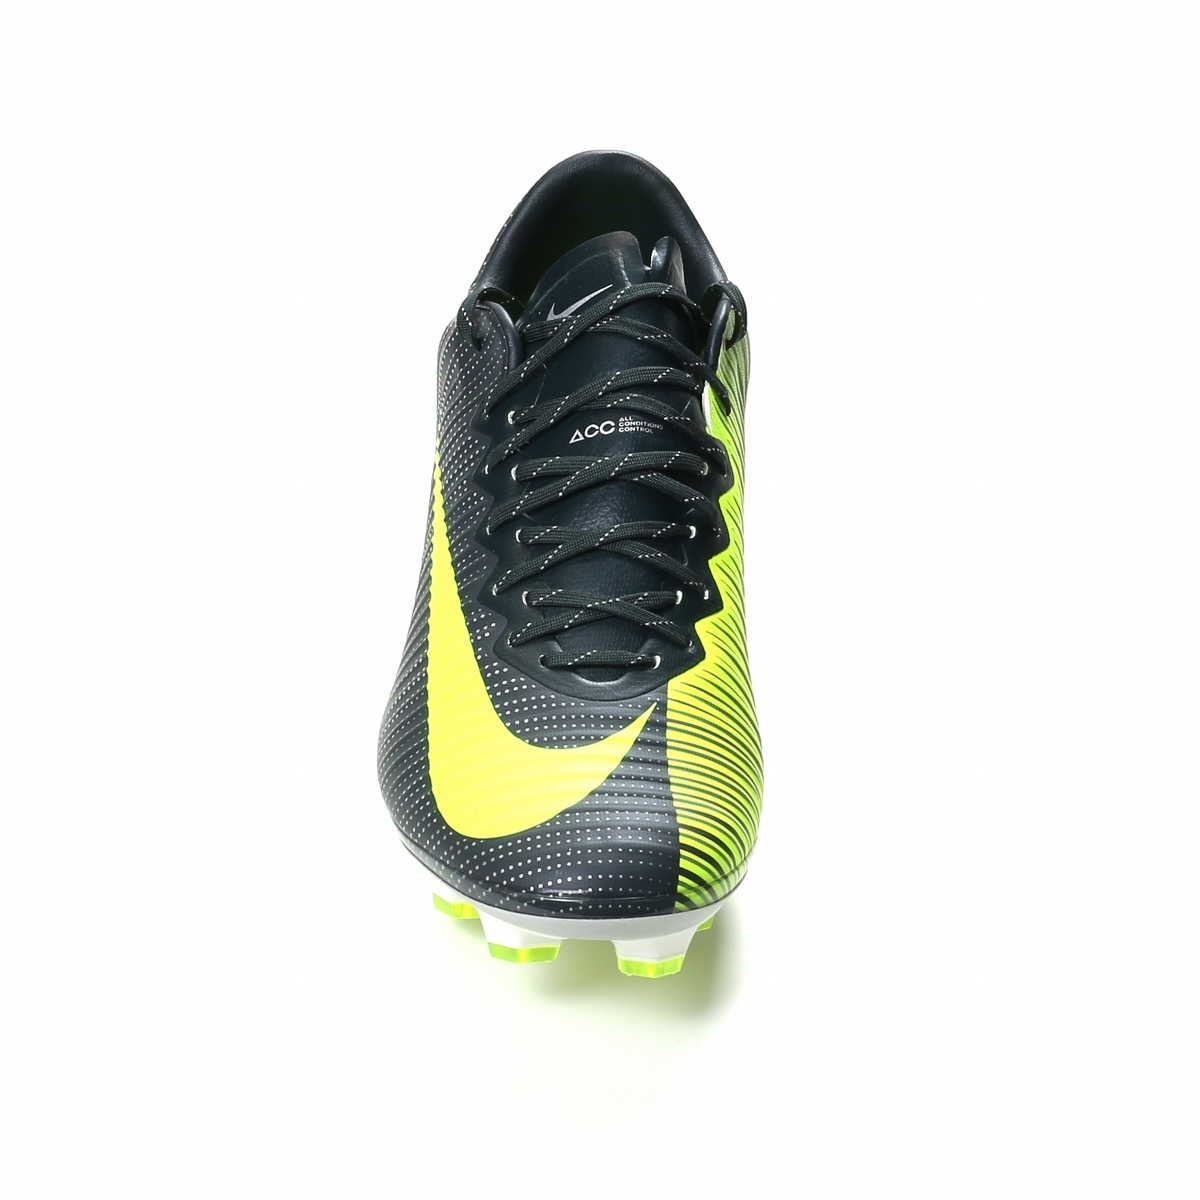 quality design 1b381 87465 Nike Mercurial ...